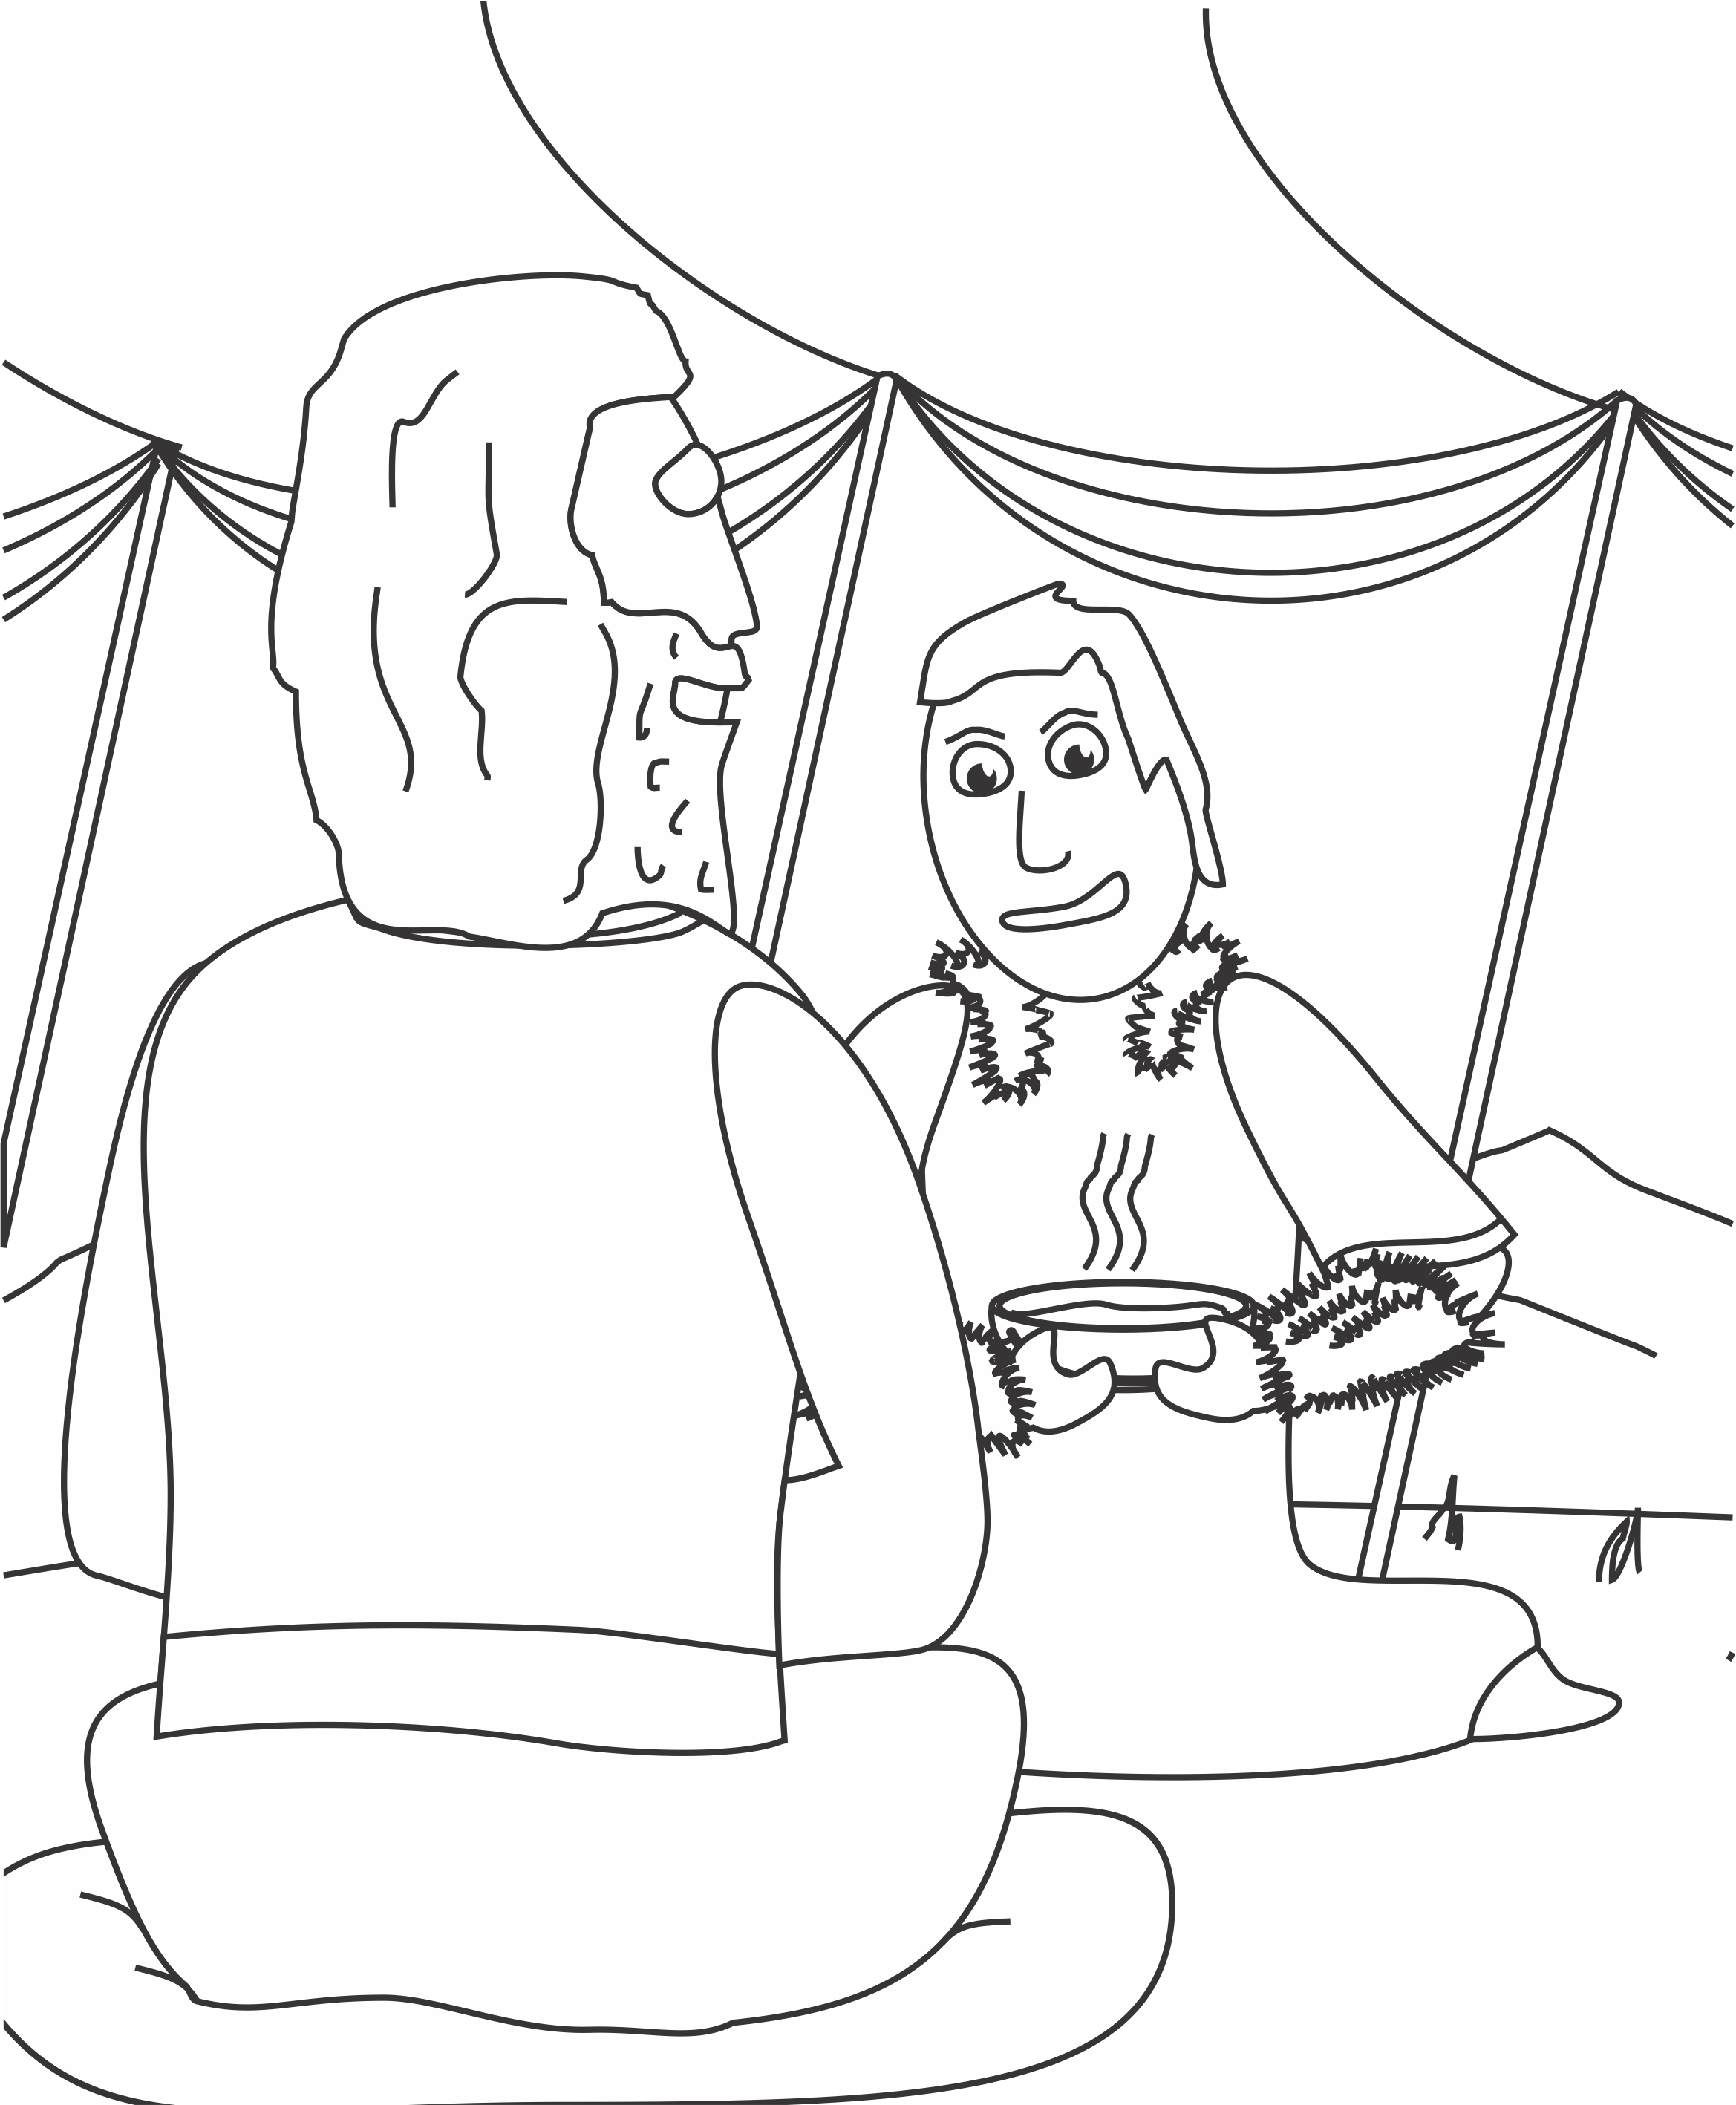 Jacob and Esau Coloring Page | Our Bible Coloring Pages | Pinterest ...